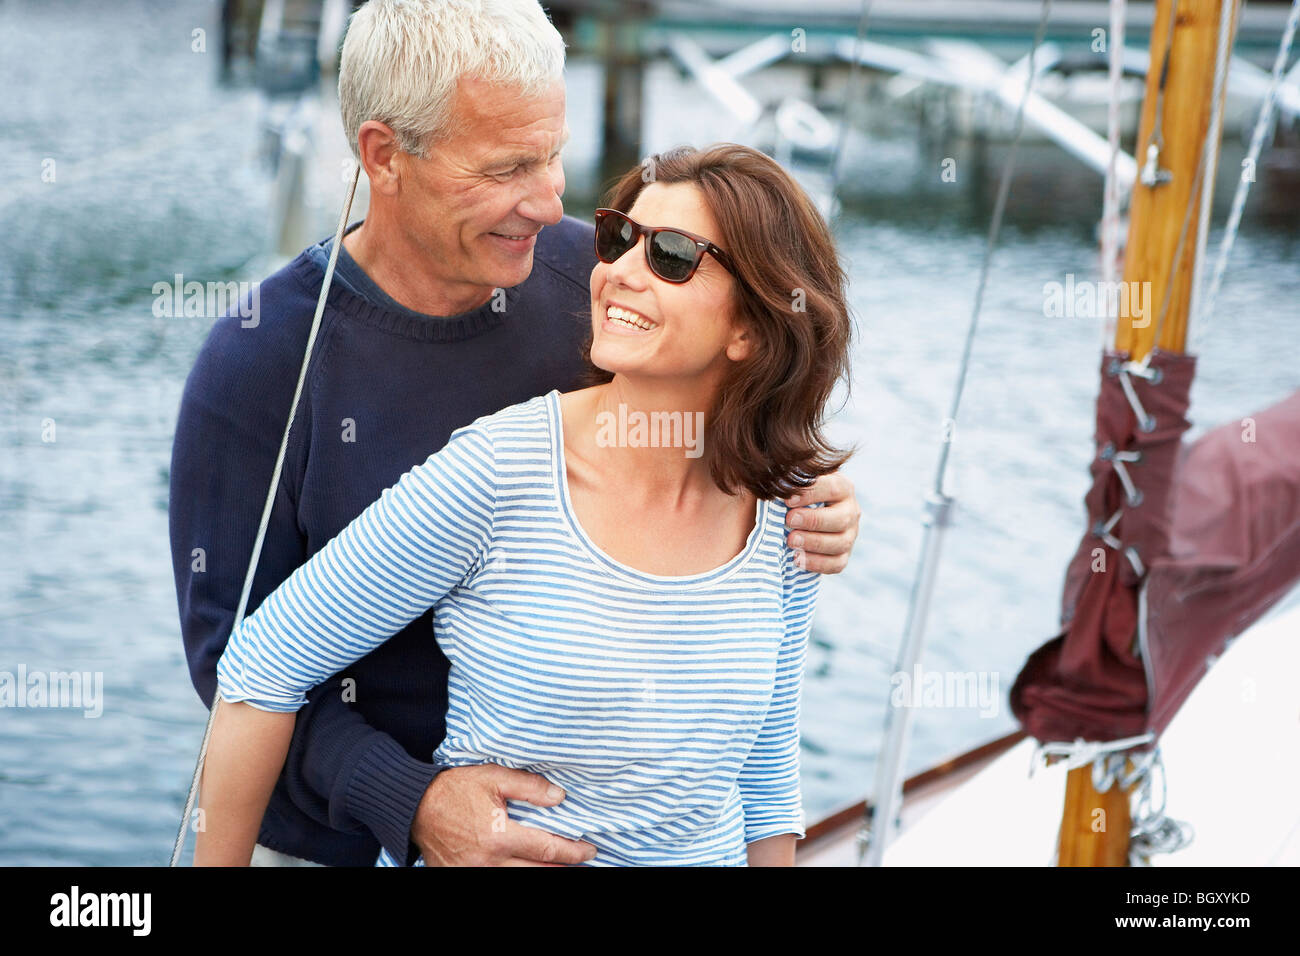 Middle aged couple on an old boat - Stock Image